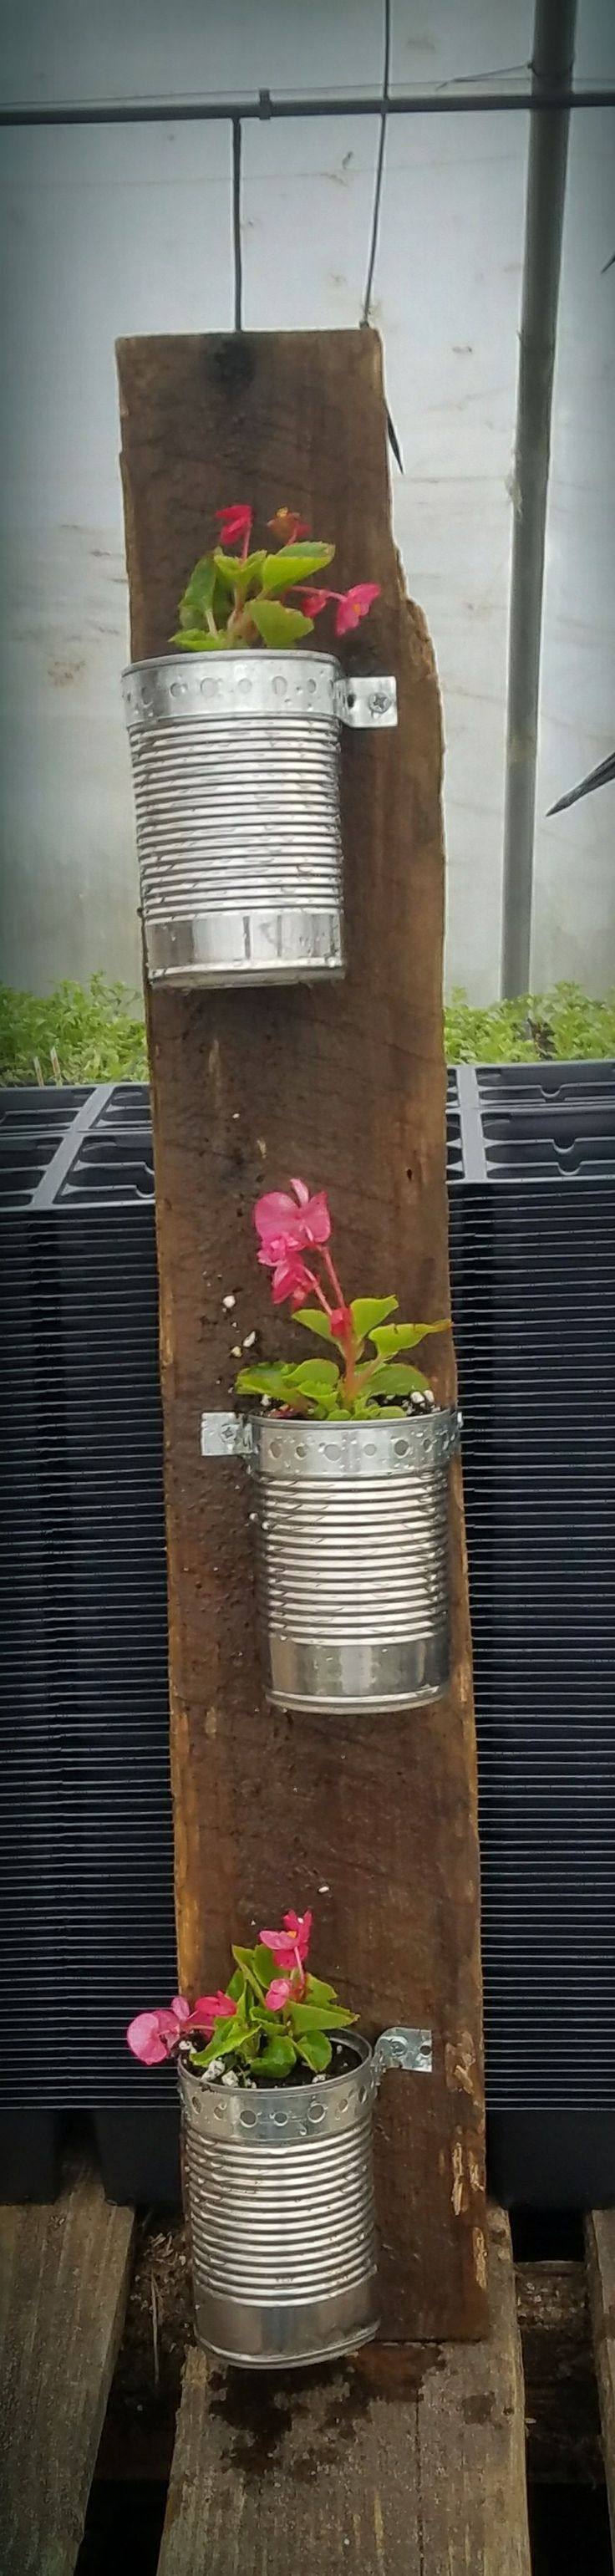 Wood plank planter Super easy and adorable. Items: Wood plank, Aluminum cans, Screws, Perforated Galvanized Steel Duct Strap, drill. Drill some holes in cans to allow water to flow.